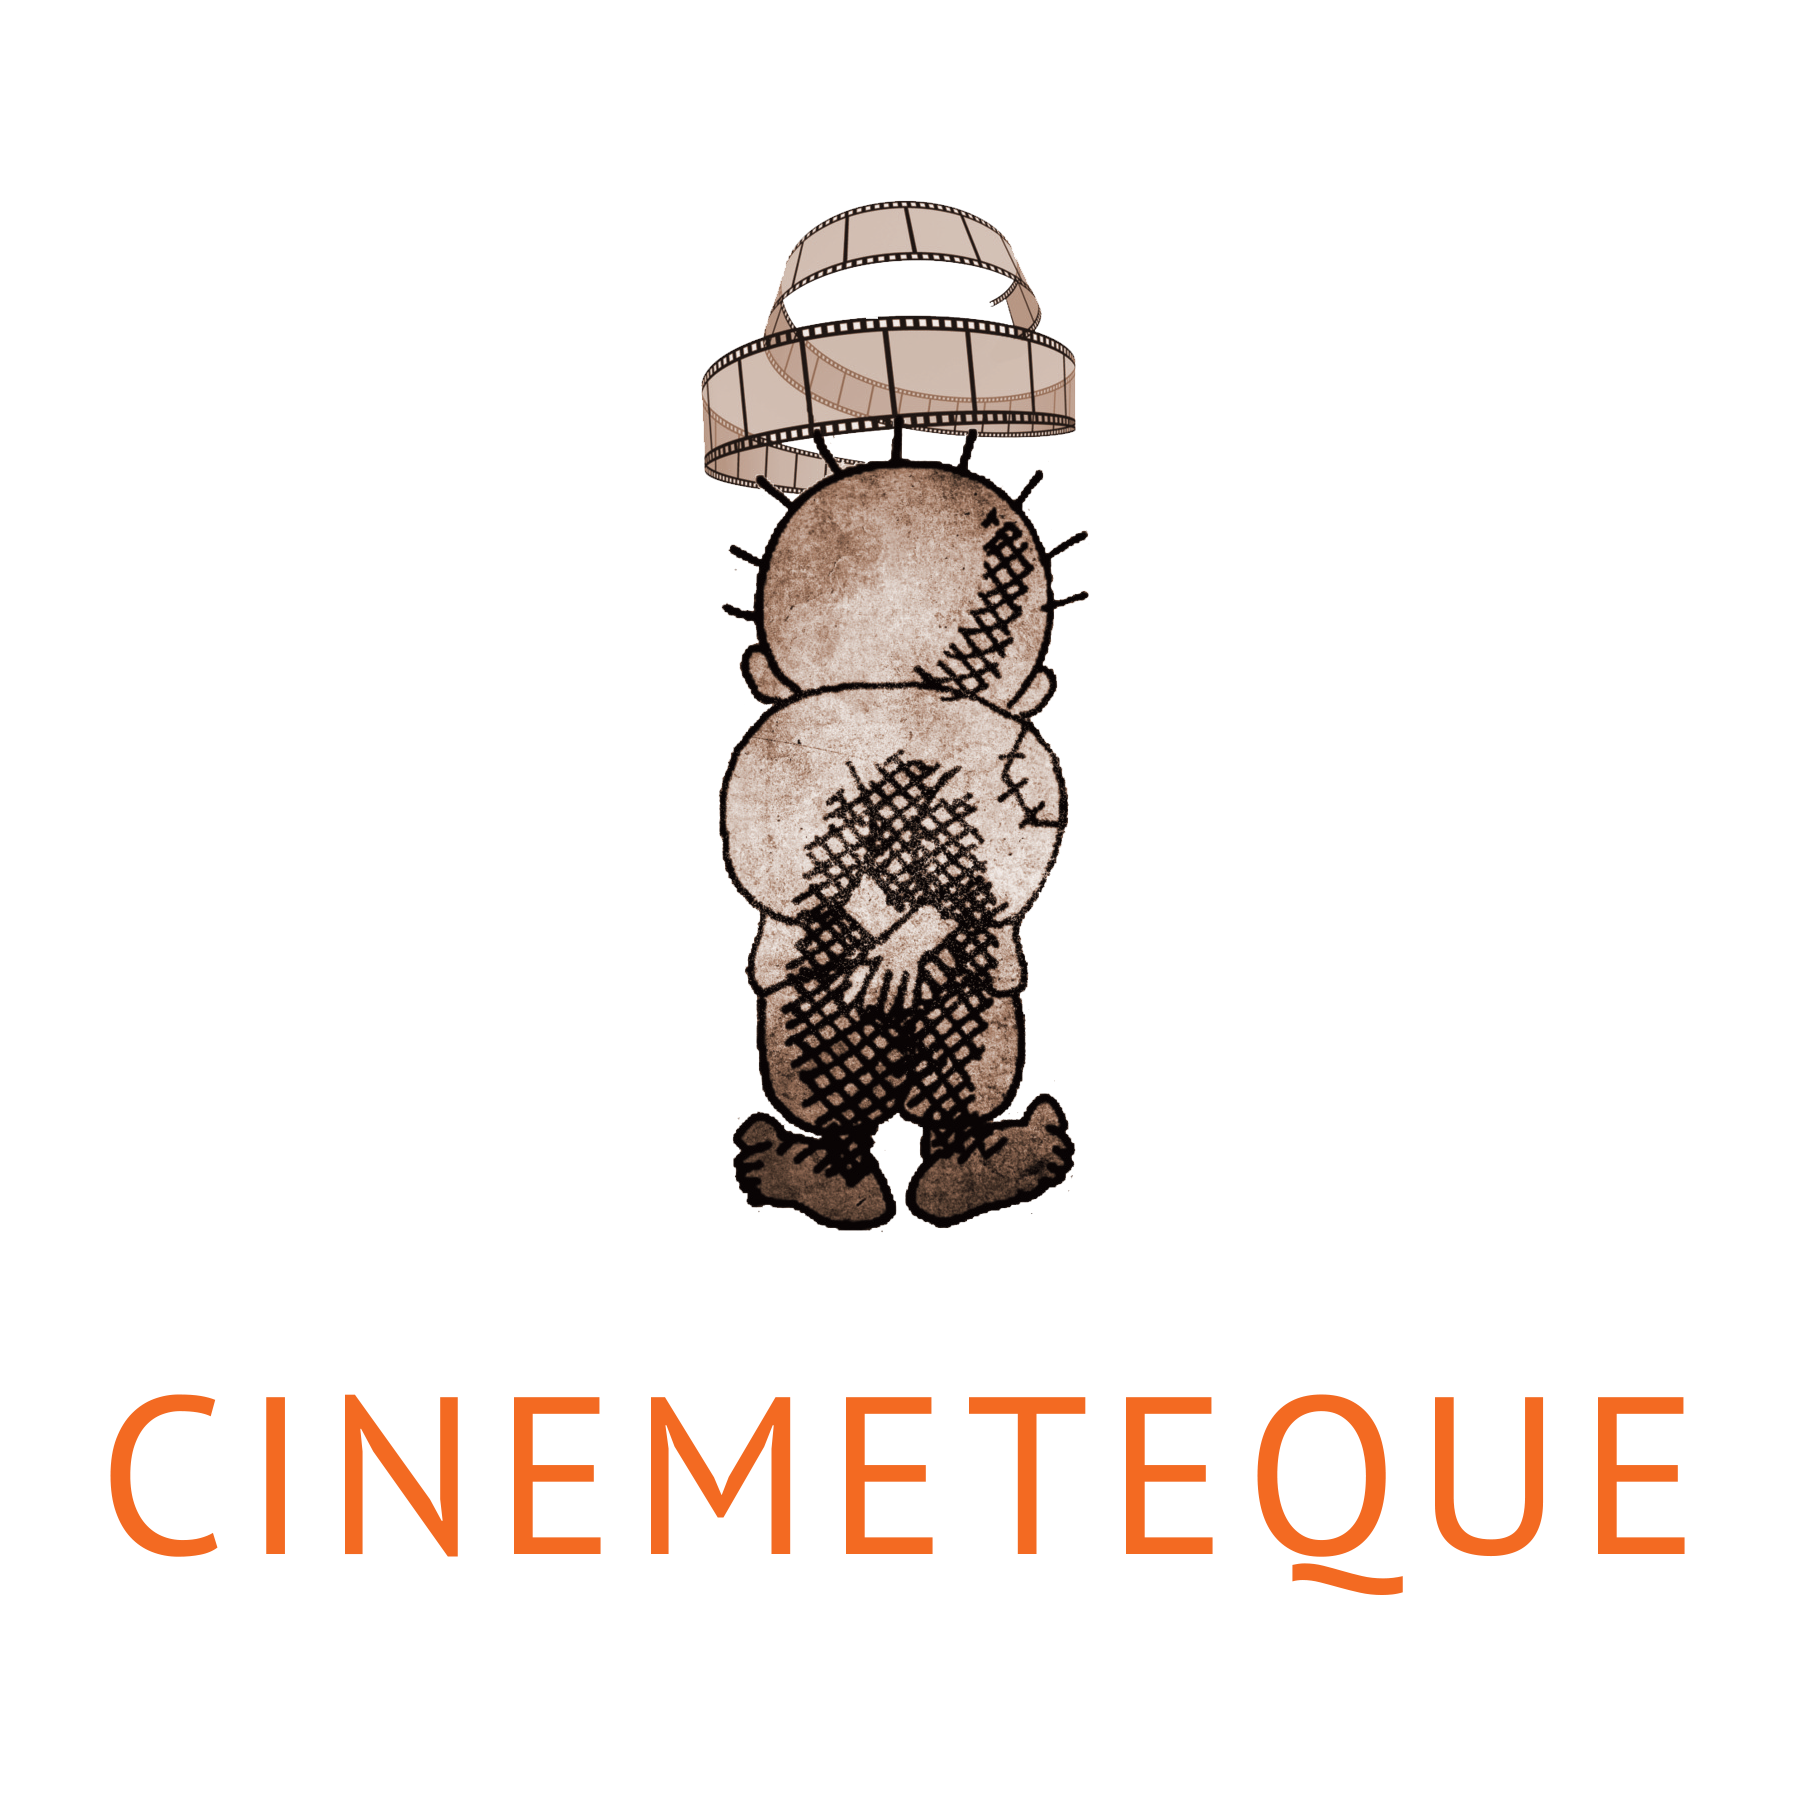 Cinemeteque